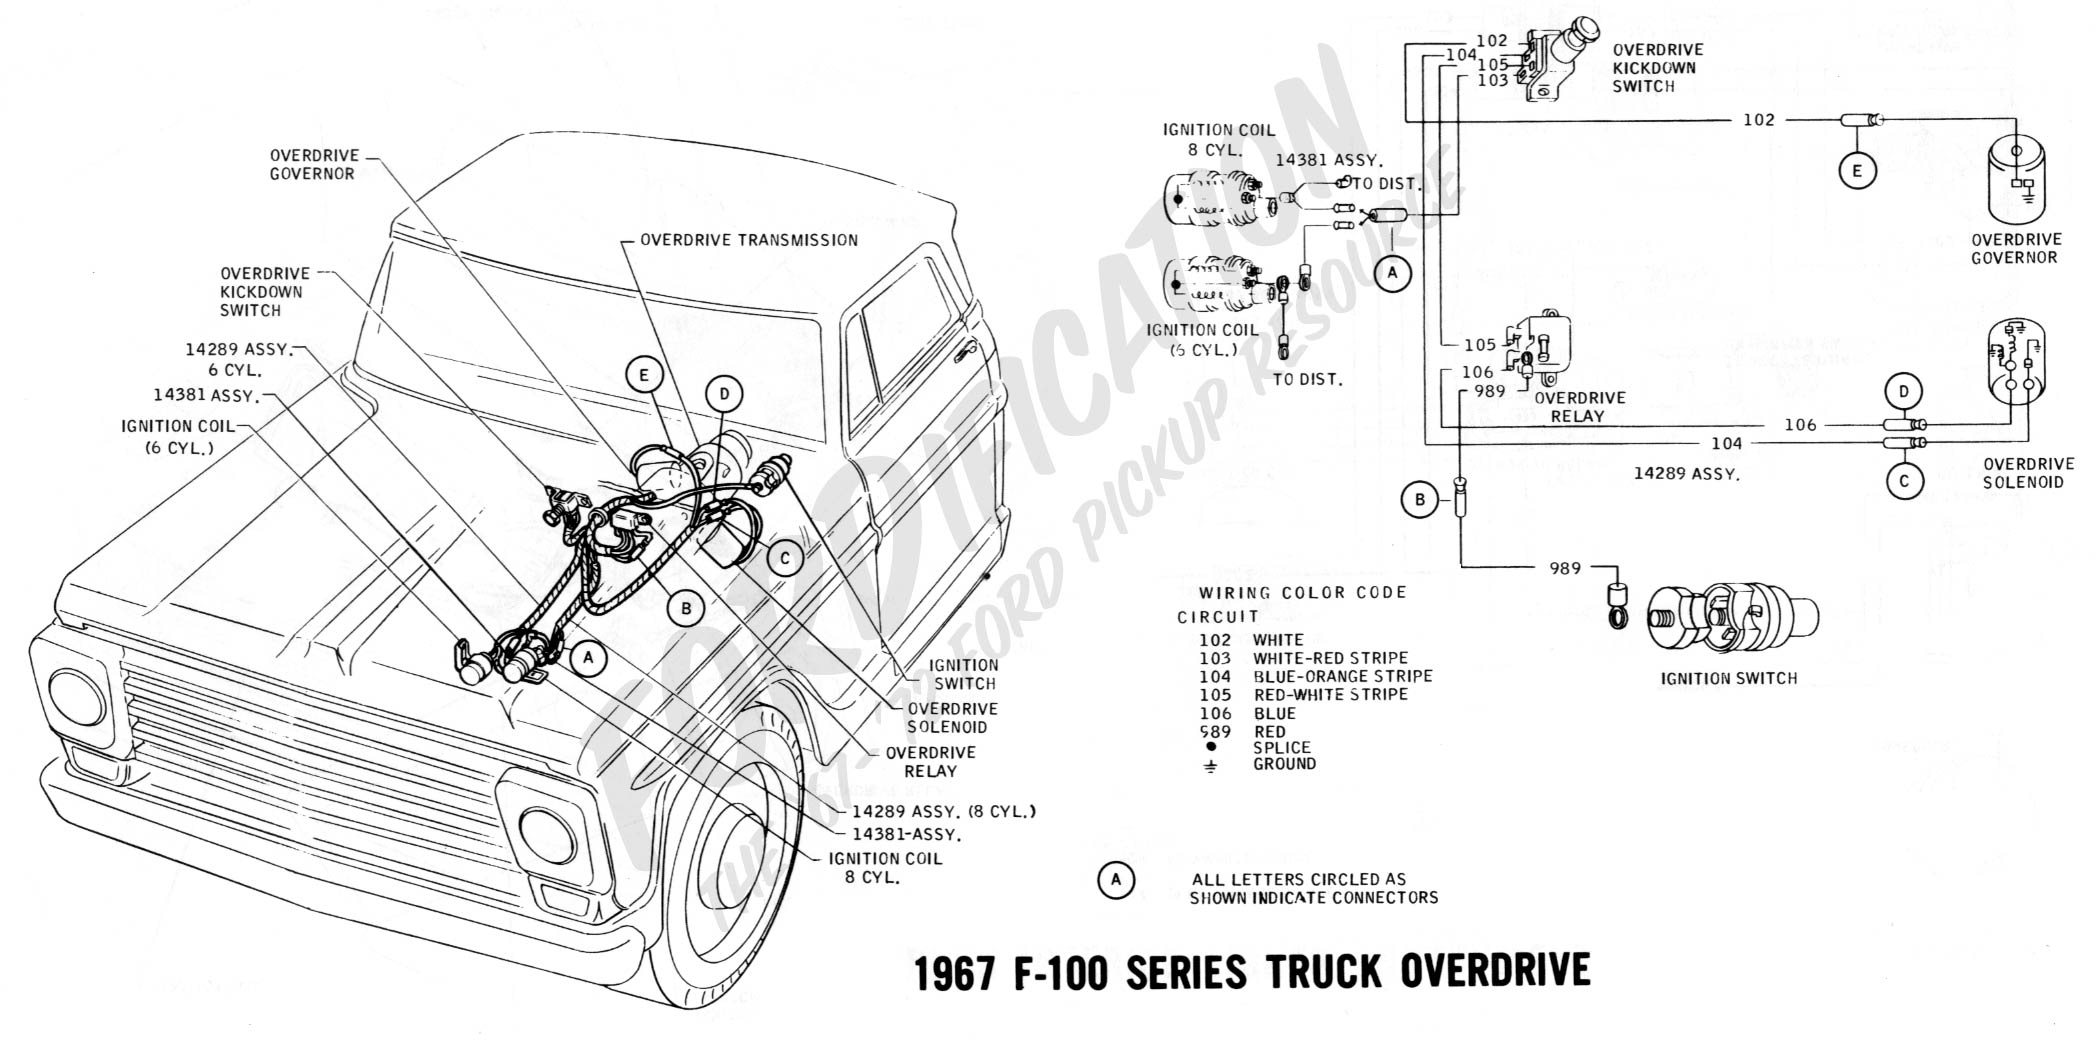 ford truck technical drawings and schematics section h wiring rh fordification com 1967 ford f100 wiring schematic 1967 ford f100 turn signal wiring diagram